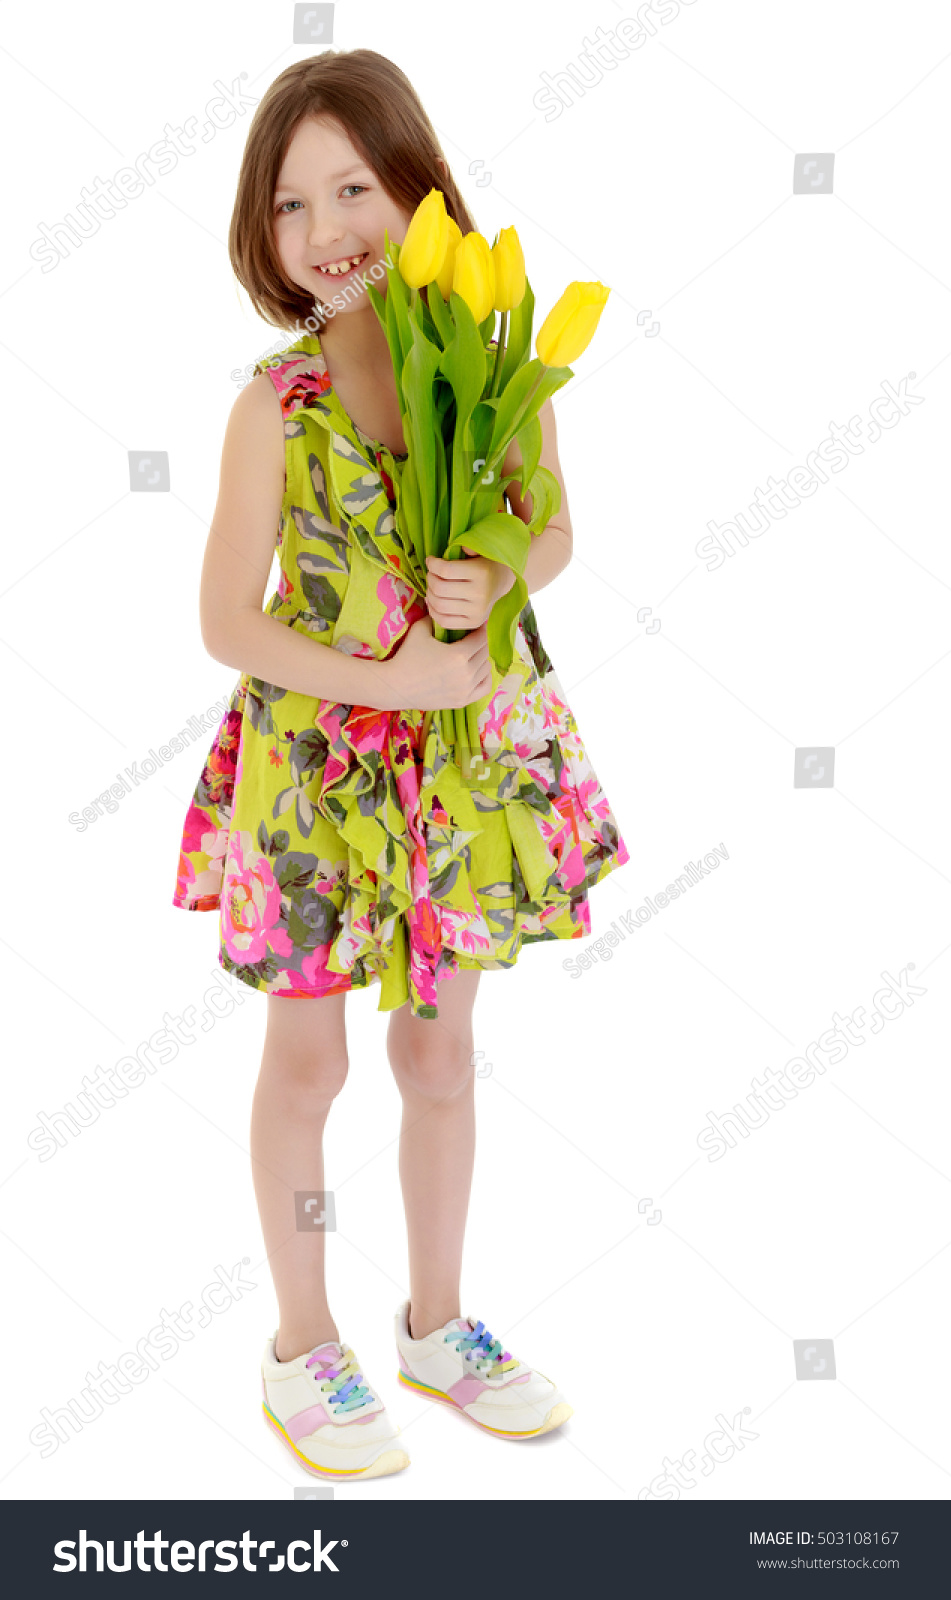 6badb88da5b82 Adorable little Caucasian girl in summer dress holding a bouquet of yellow  tulips.Isolated on white background. - Image